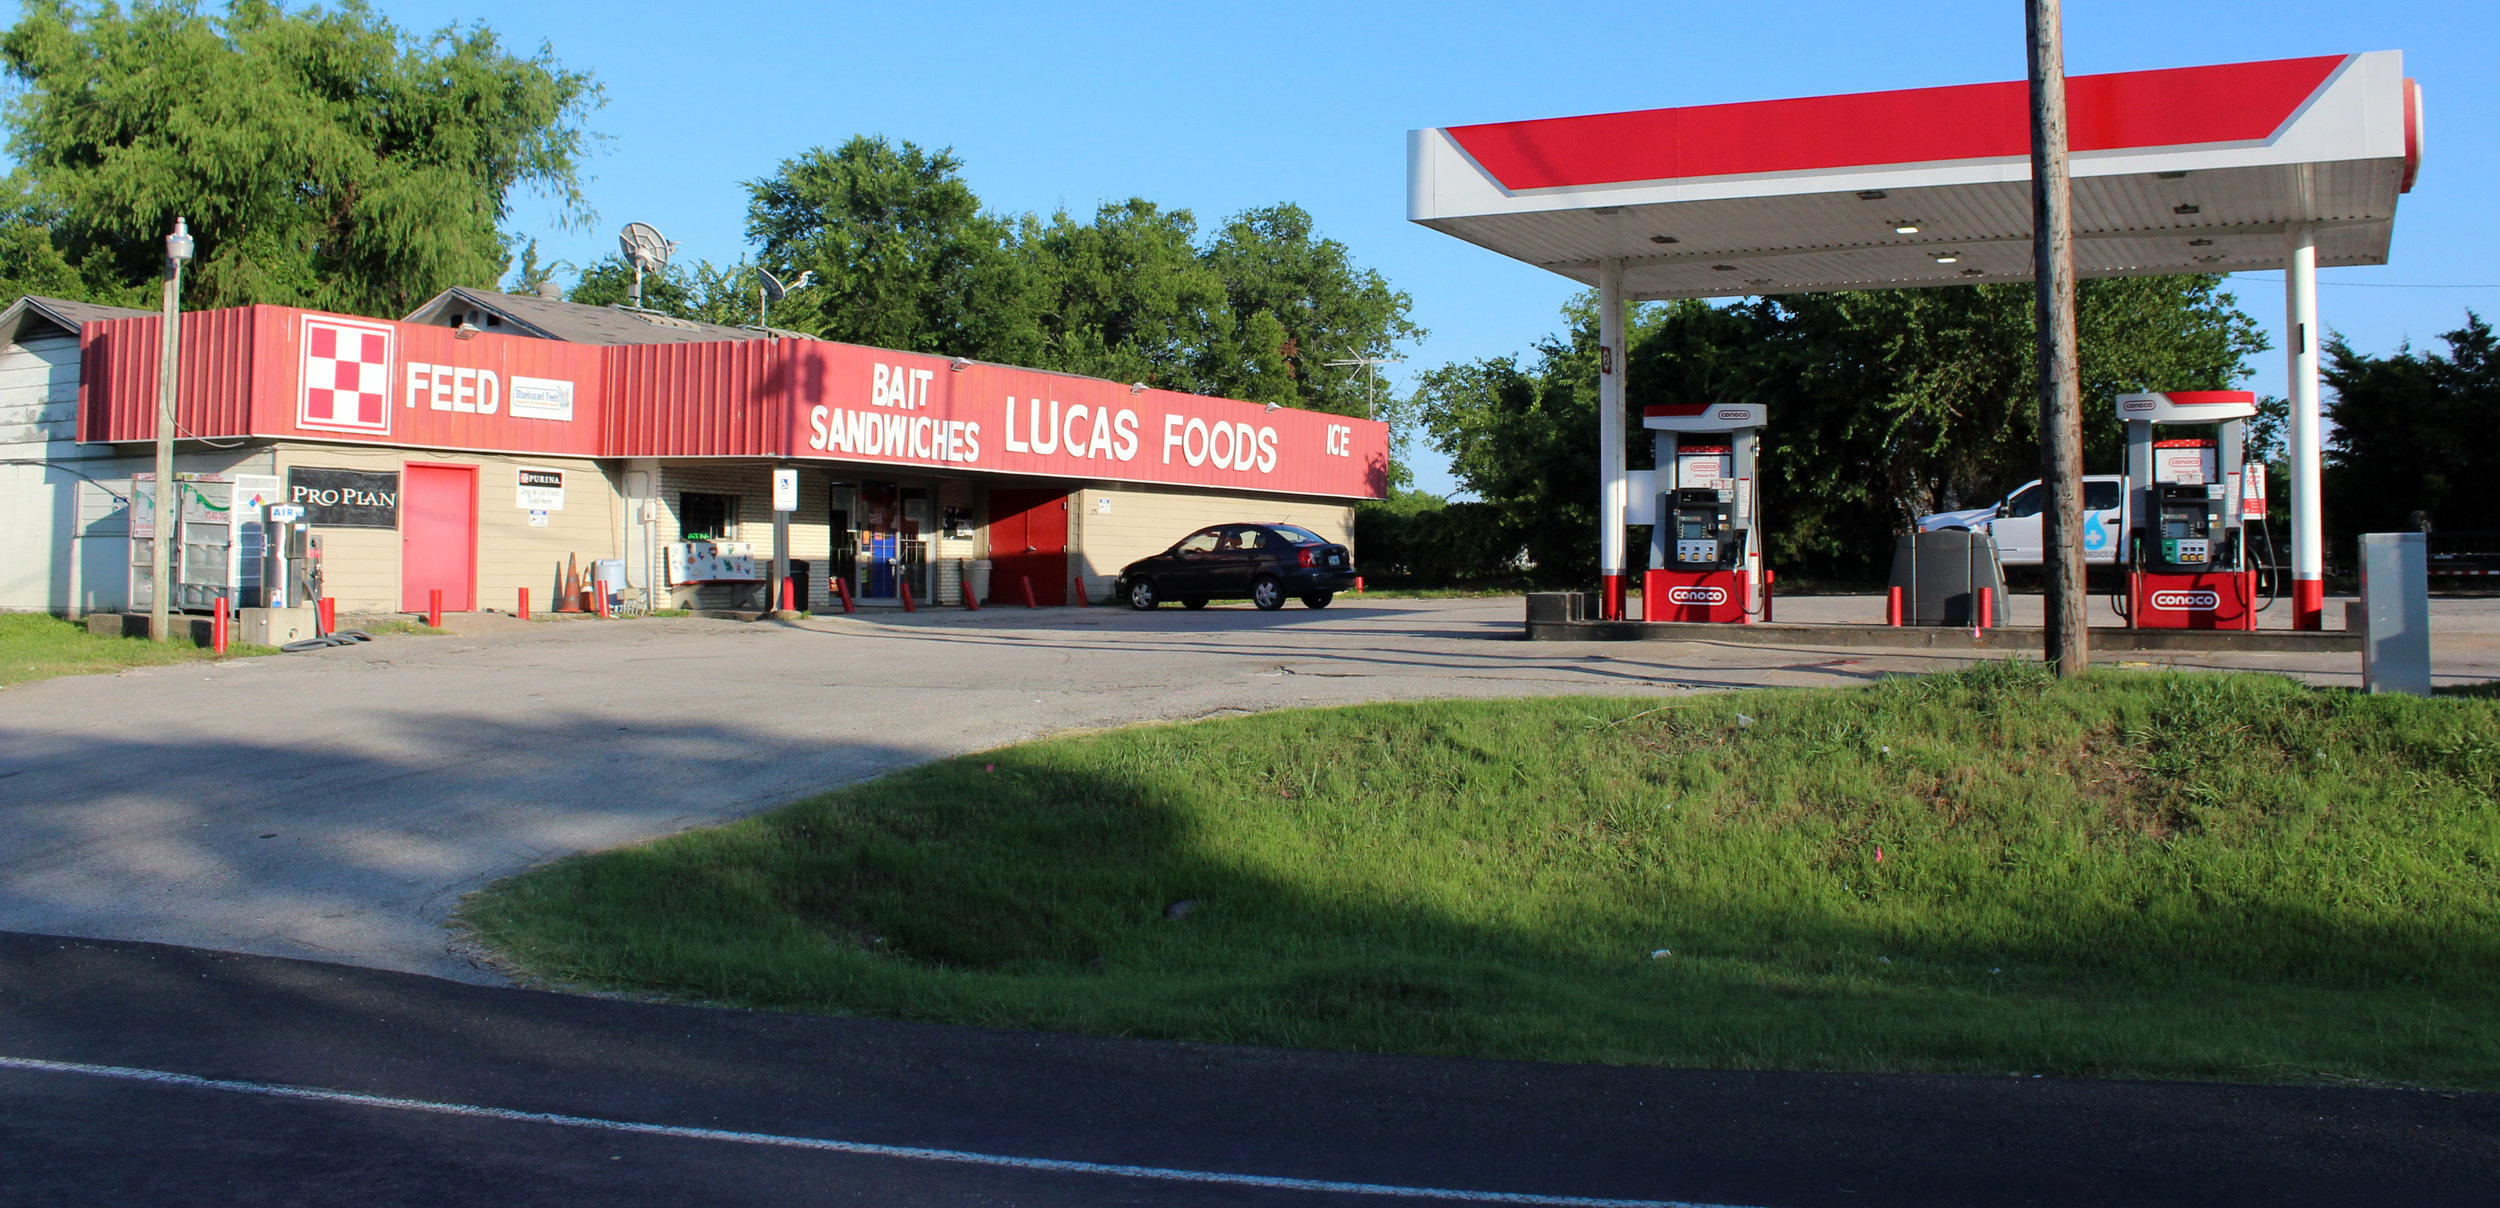 The owner of the Lucas Food Mart (aka The Bait Shop), located at 178 Southview Dr., voiced concern over limited access to his business.